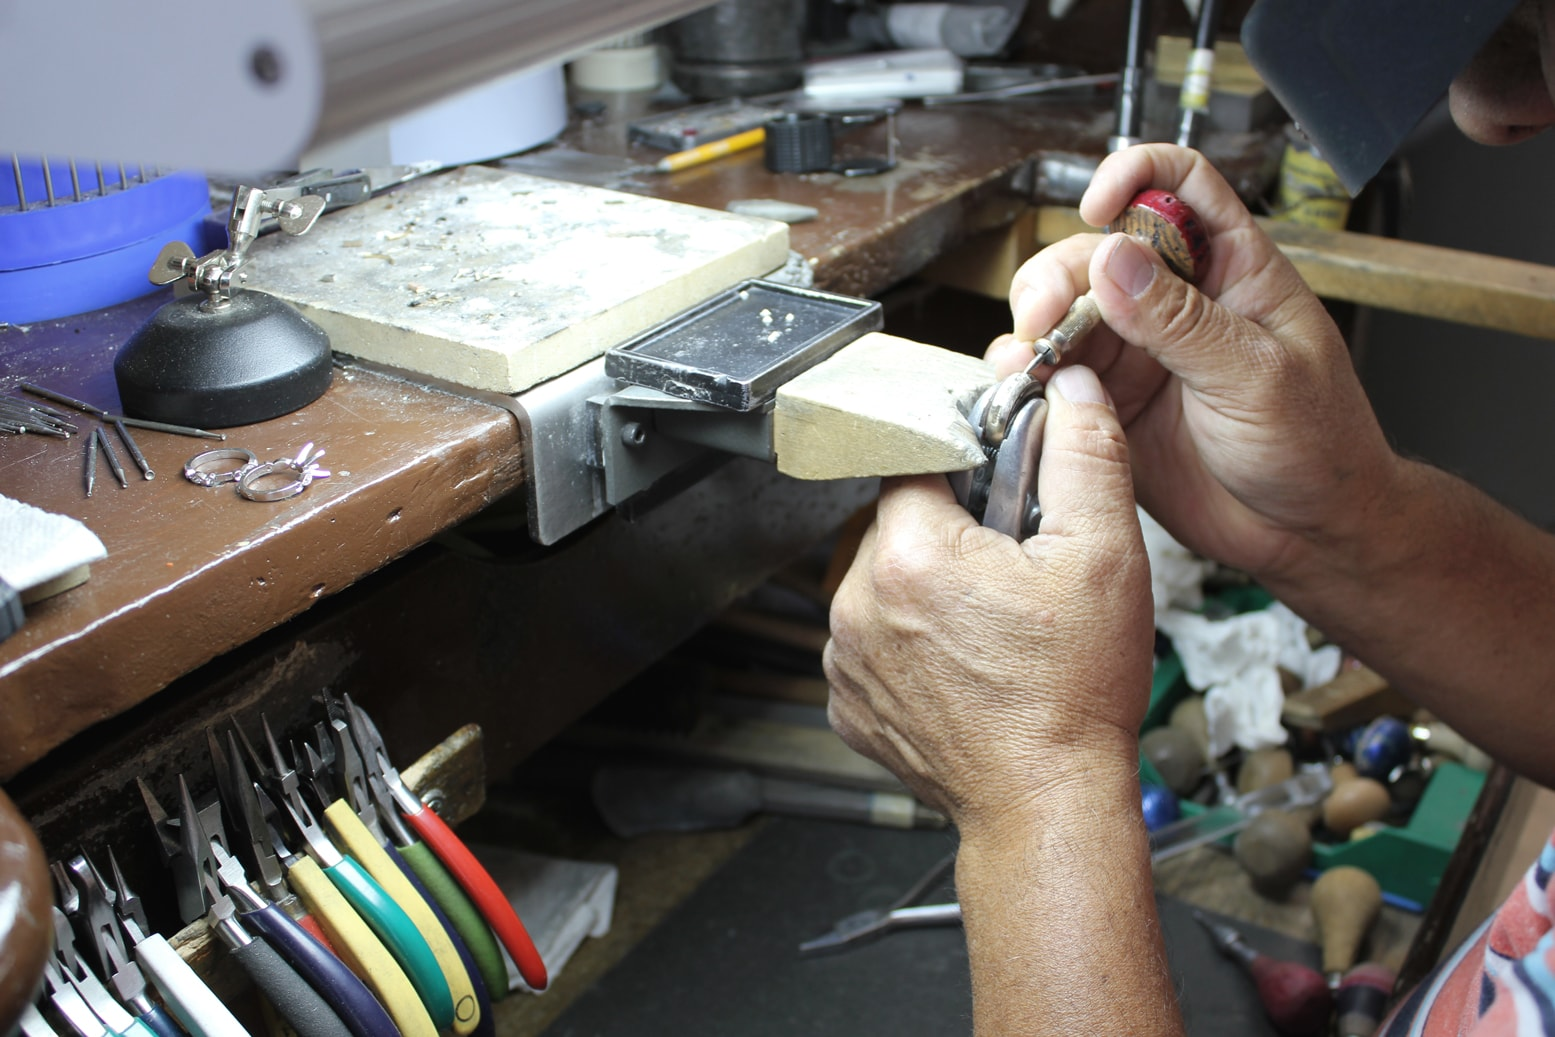 Your unique design will be polished by our expert bench jewelers